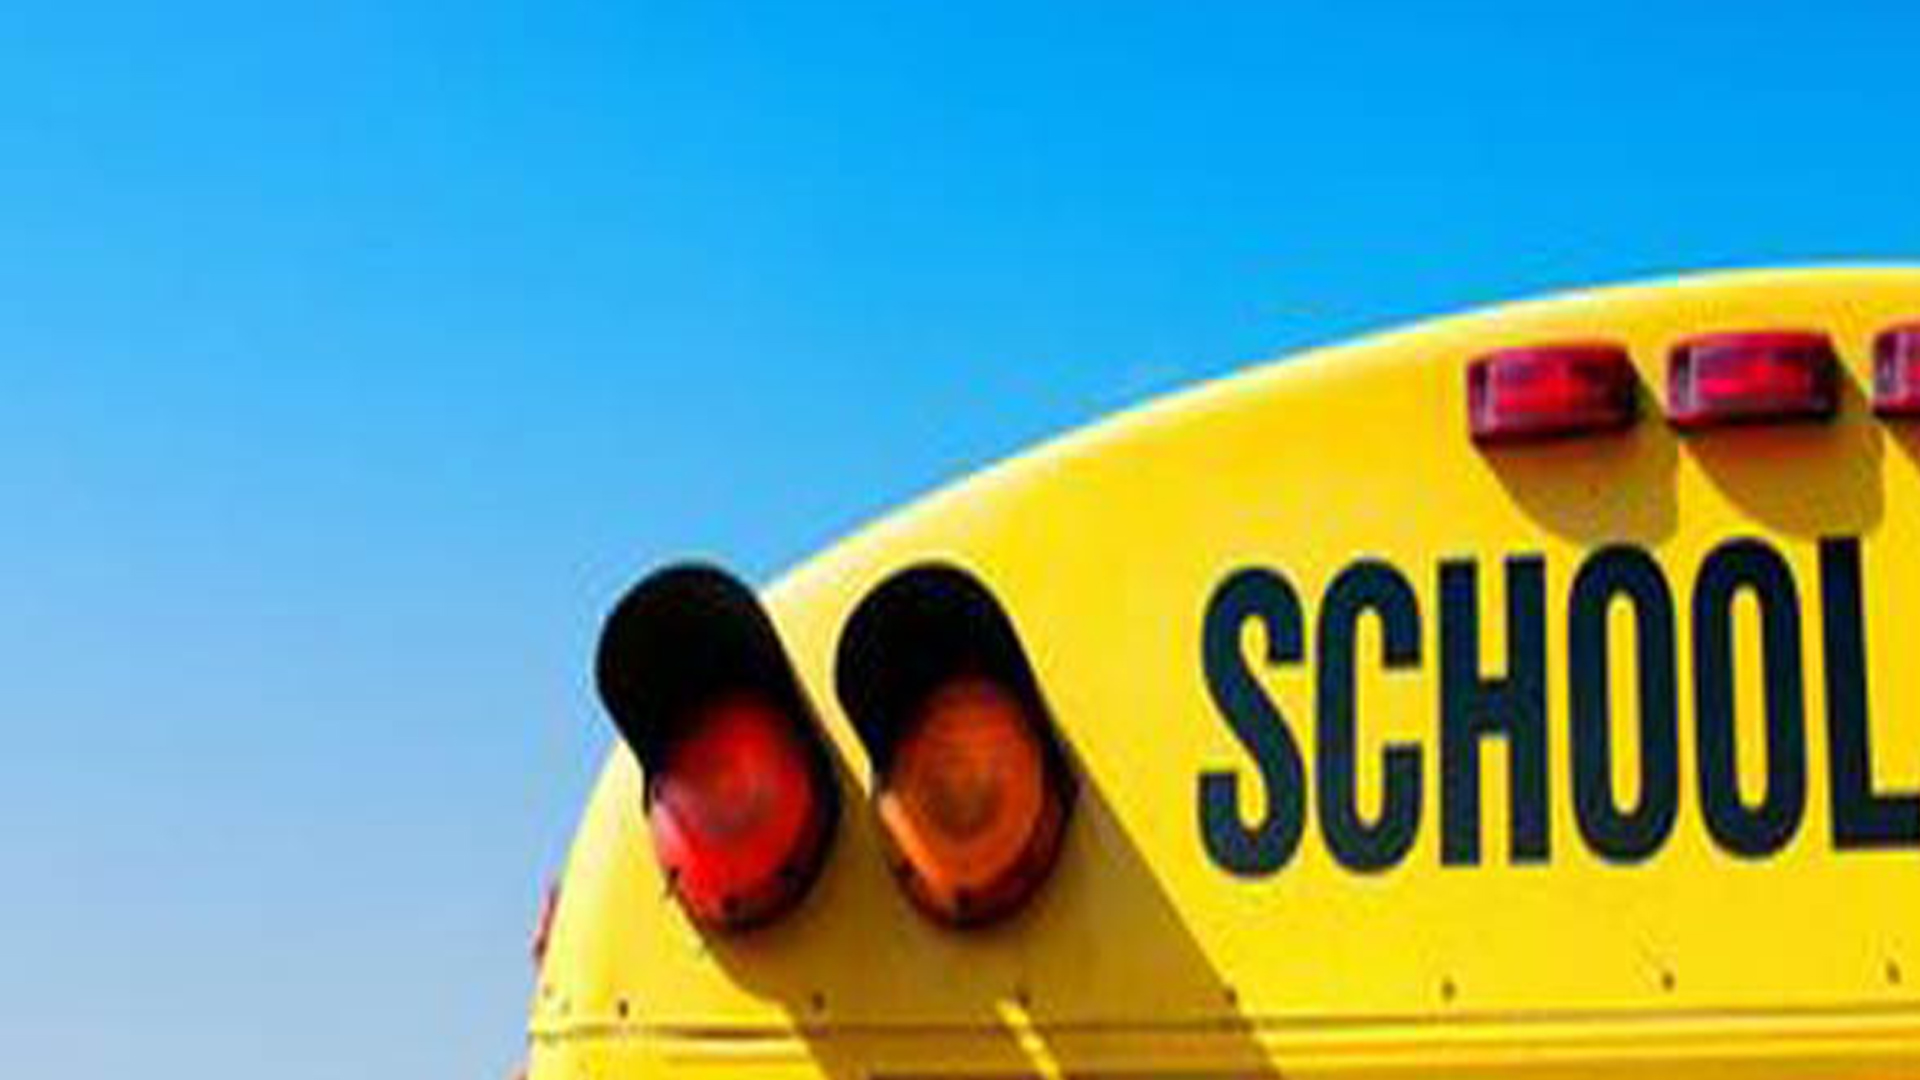 Polk County school bus involved in head-on collision, 1 dead